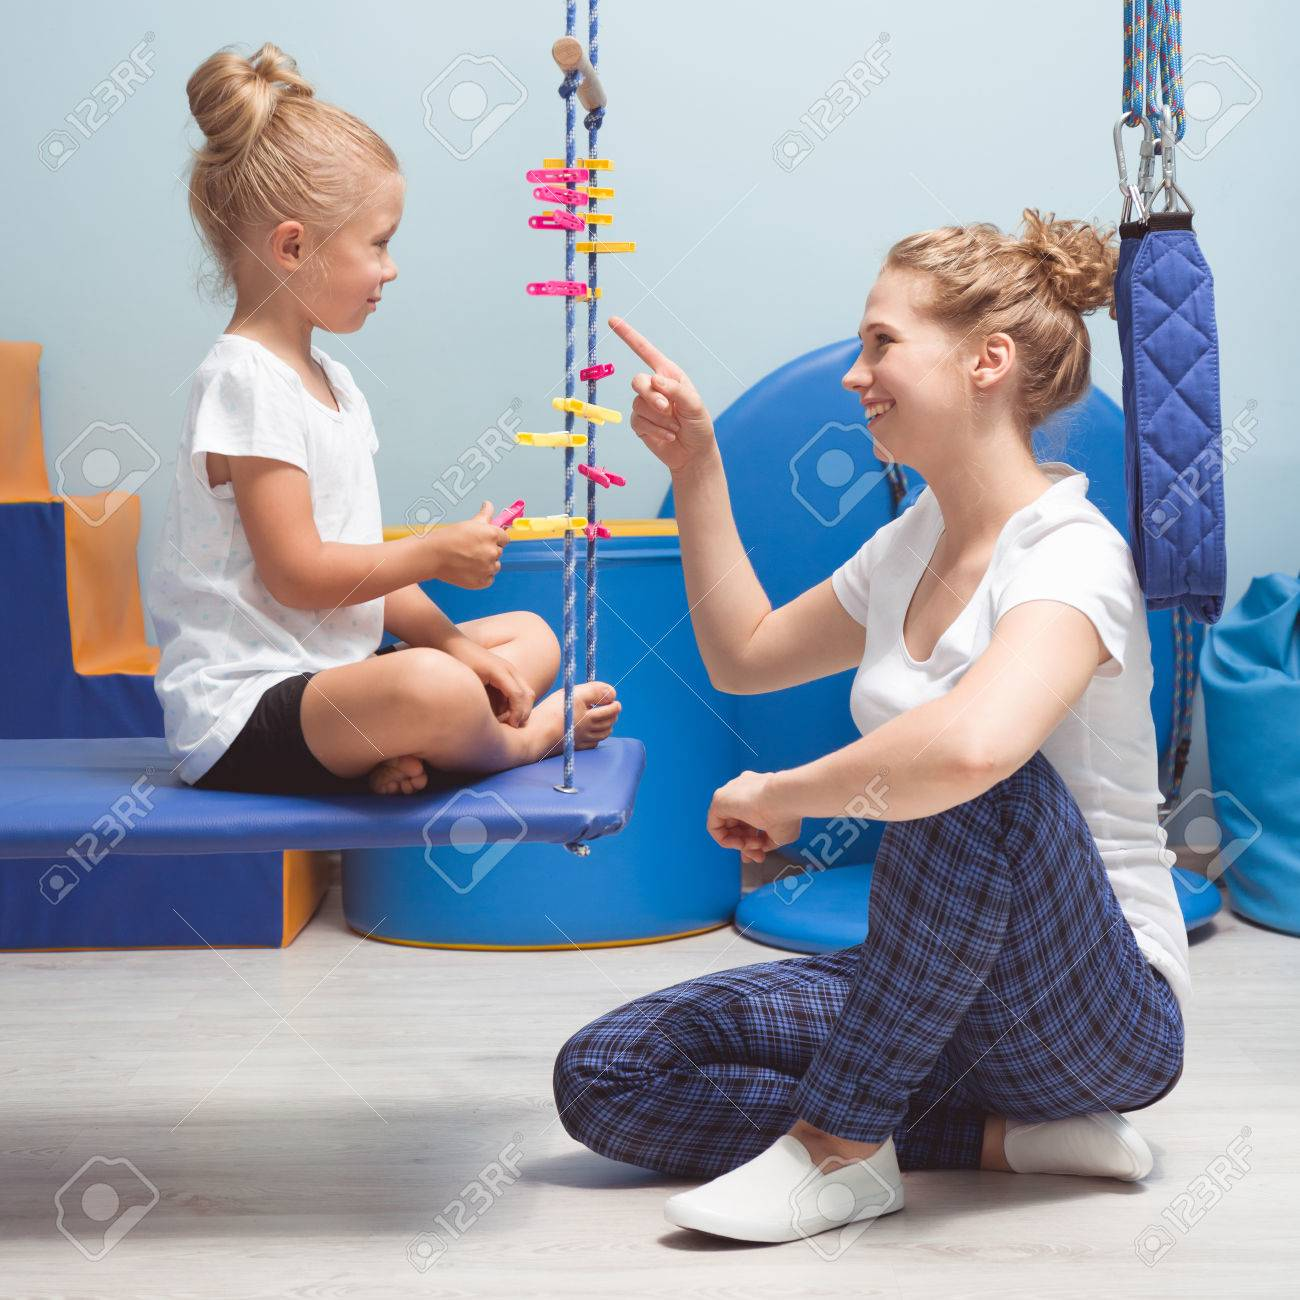 Physical and mental activities for a kid during sensory integration therapy - 70962814